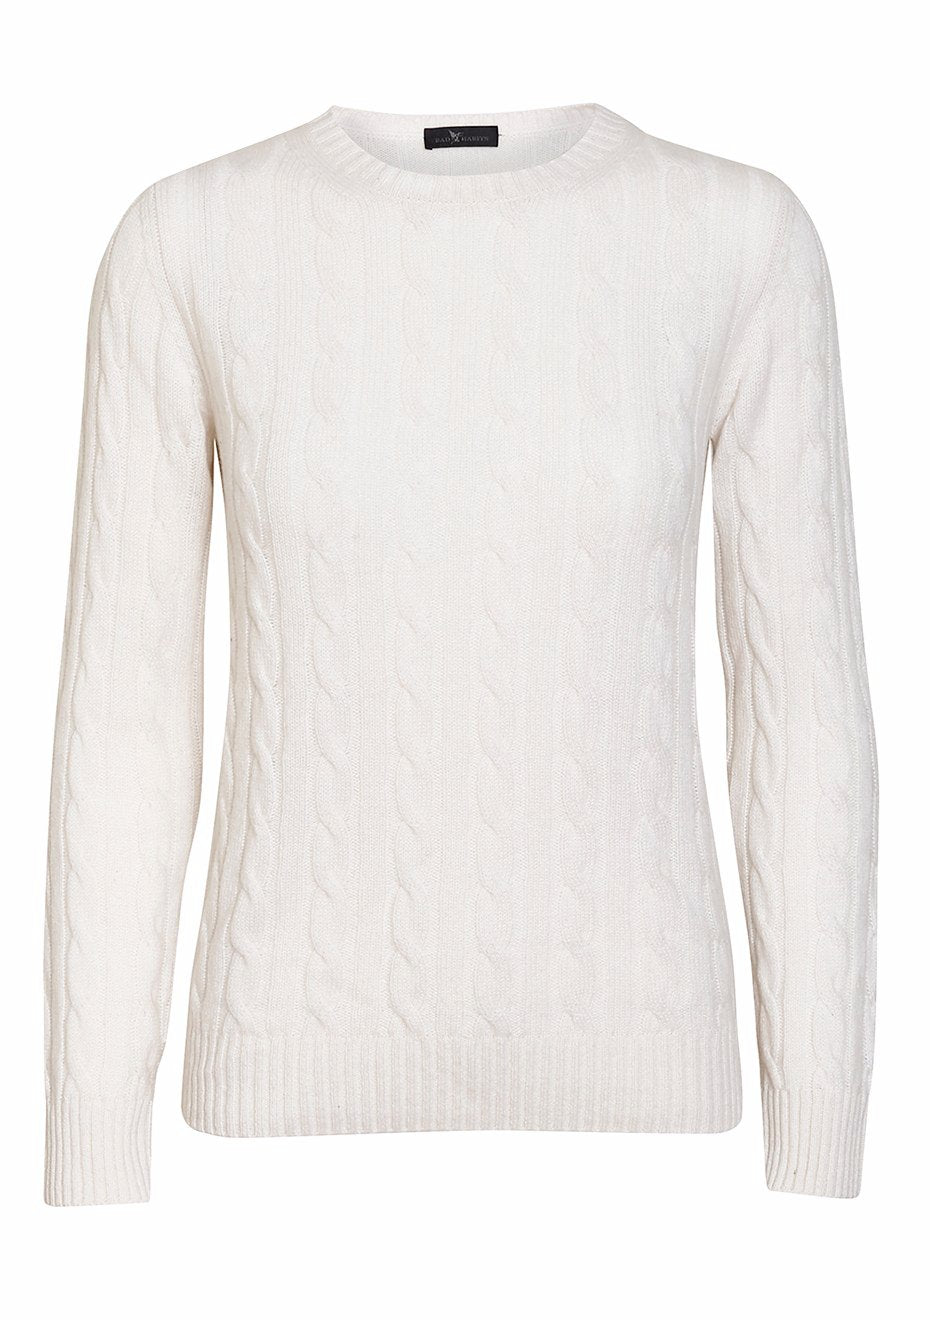 White Cashmere Cable Sweater